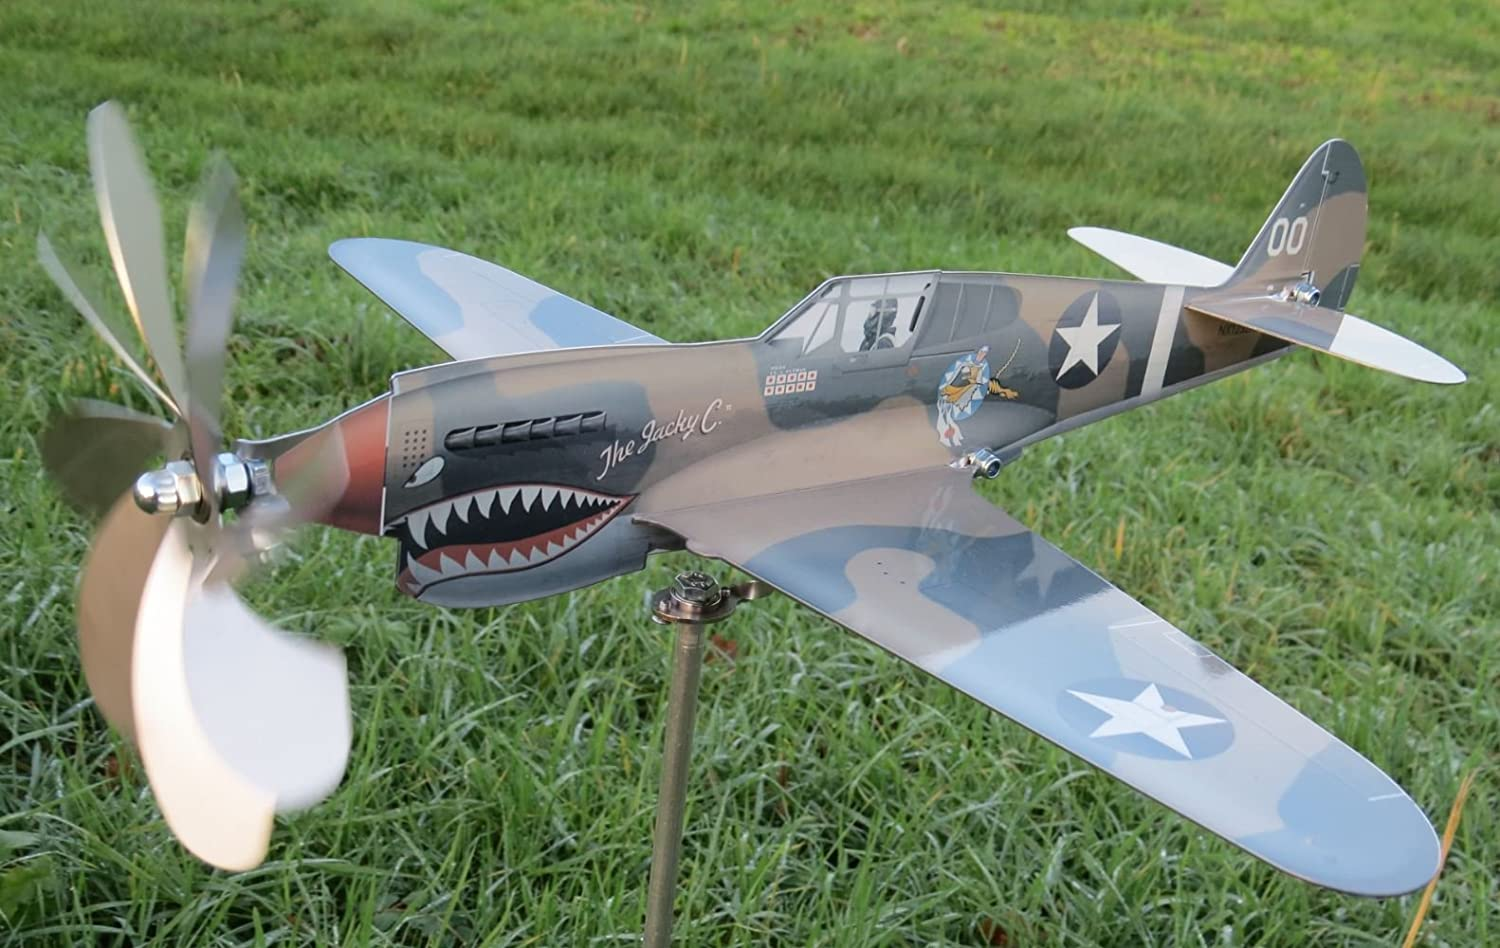 maxFlite.de P-40 Kittyhawk airplane wind wheel/ spinner; propeller turns when wind; stainless steel